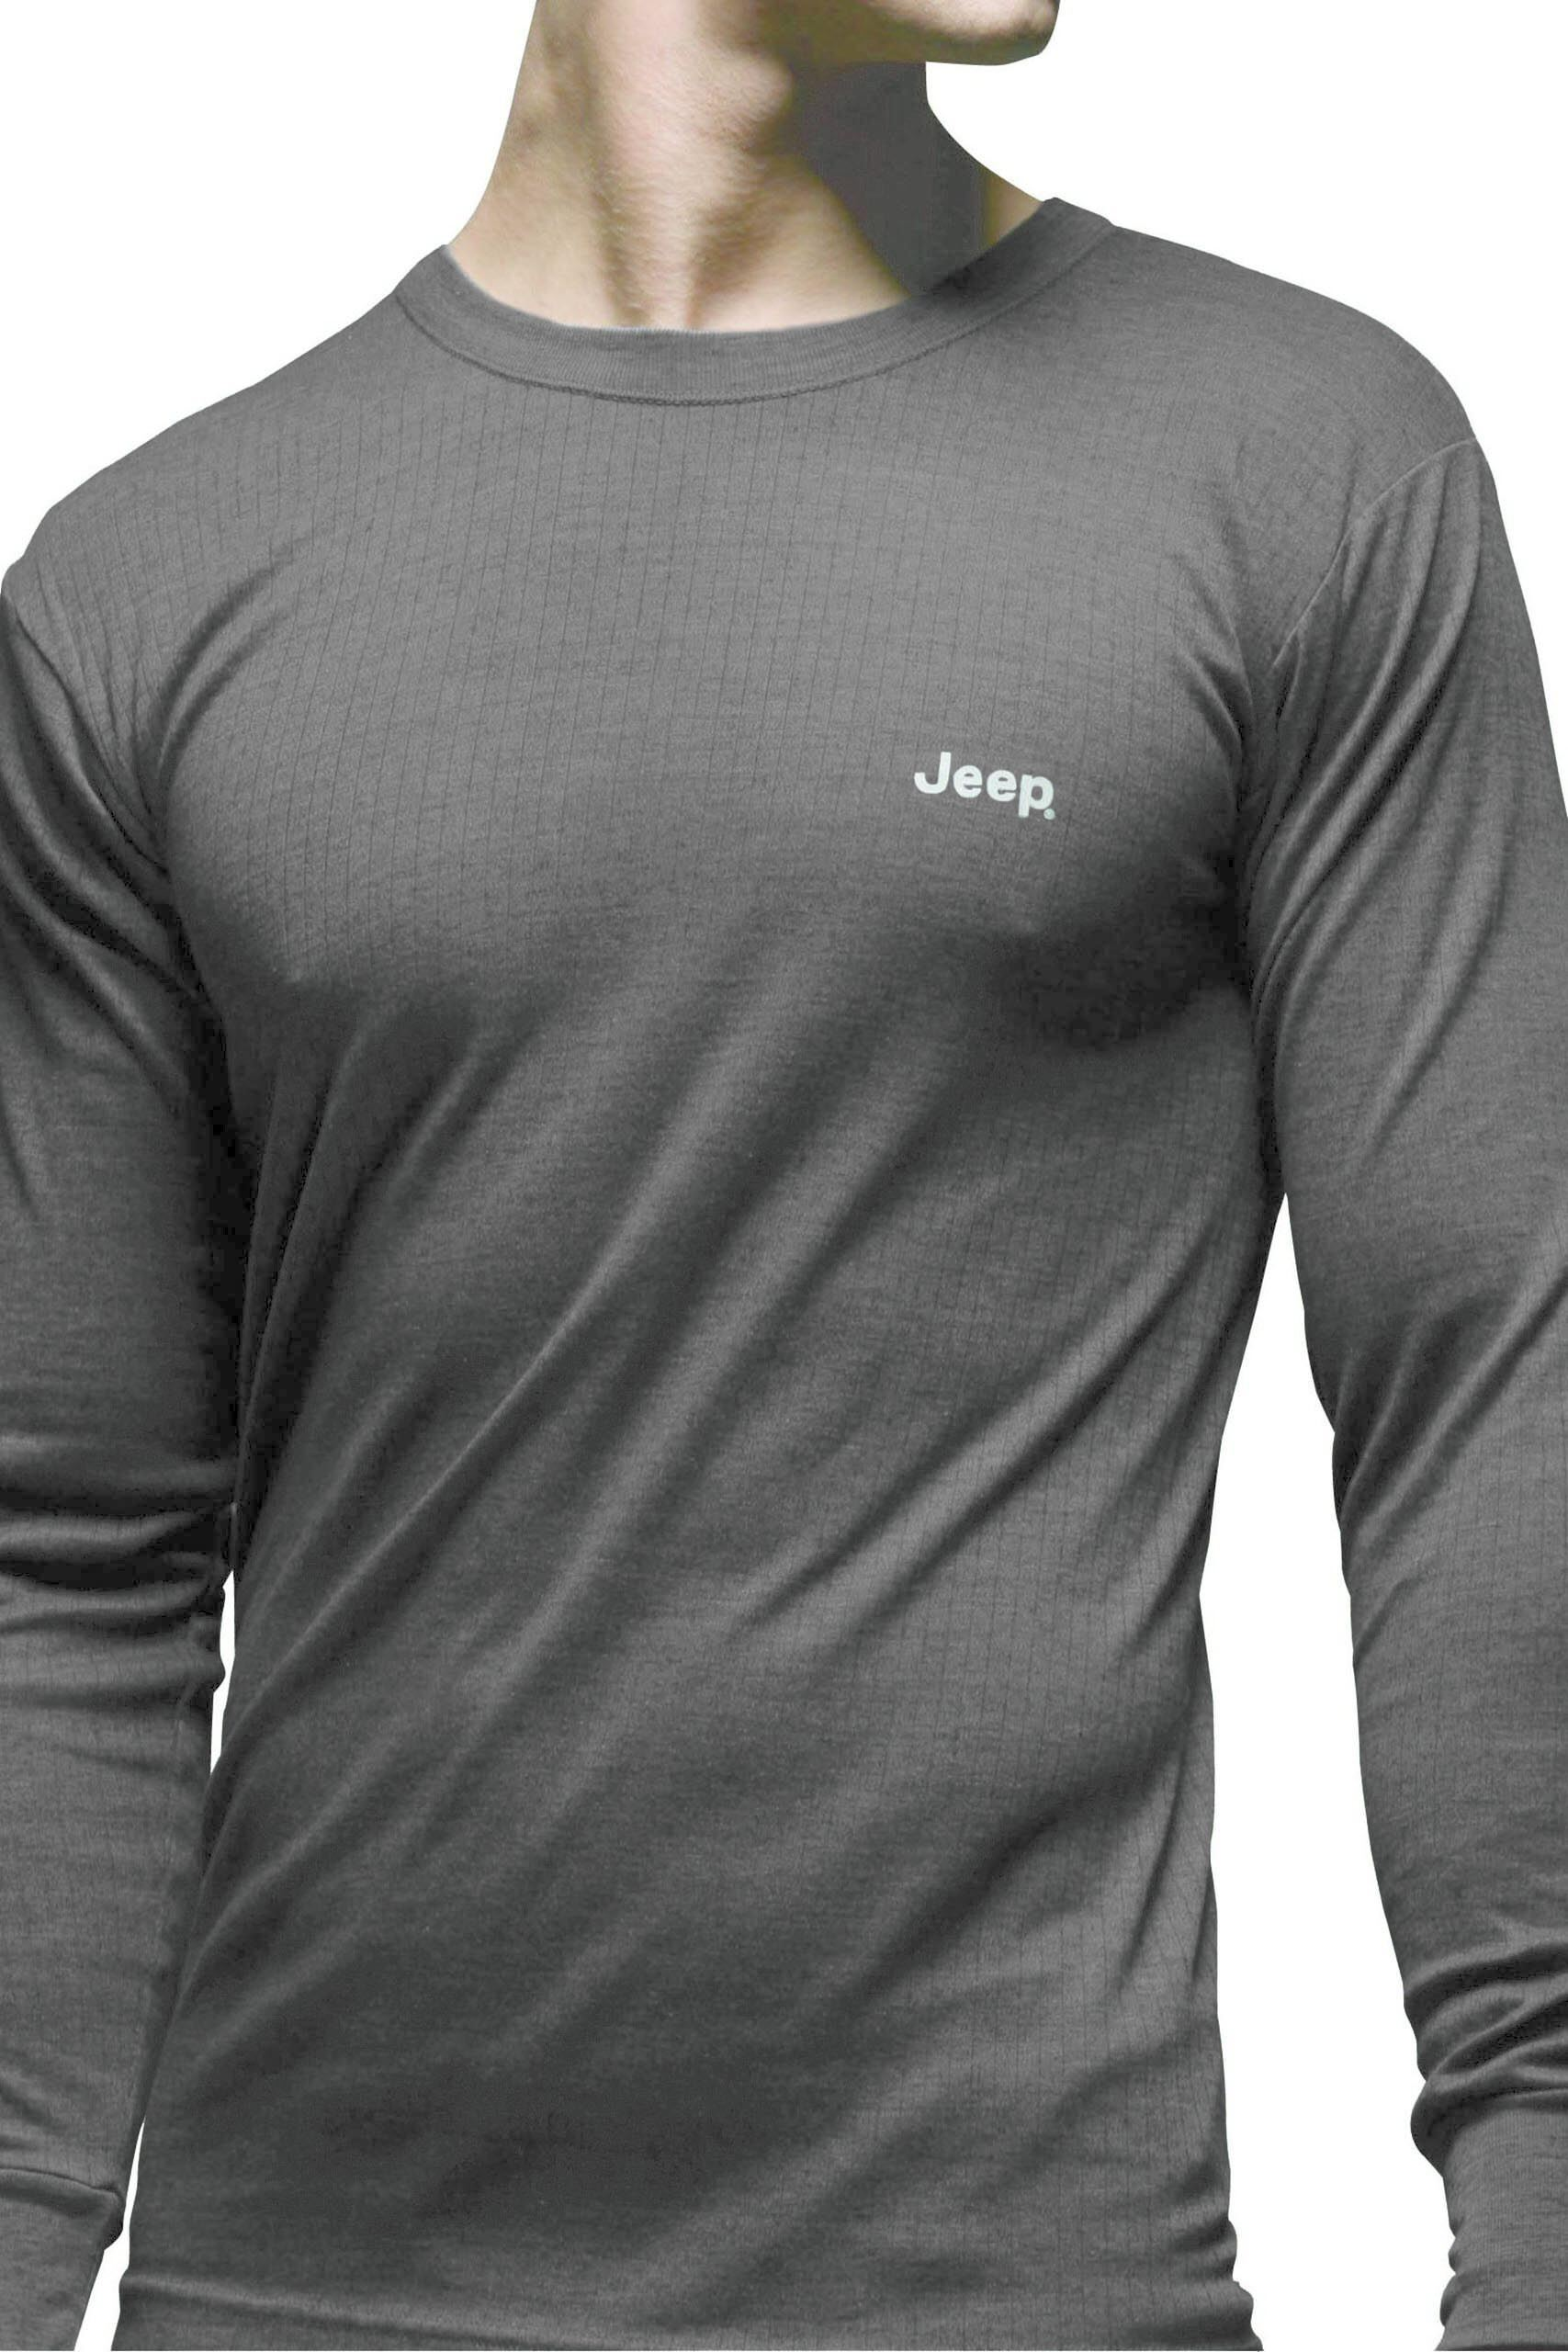 Image of 1 Pack Grey Long Sleeved Thermal T-Shirt Men's Small - Jeep